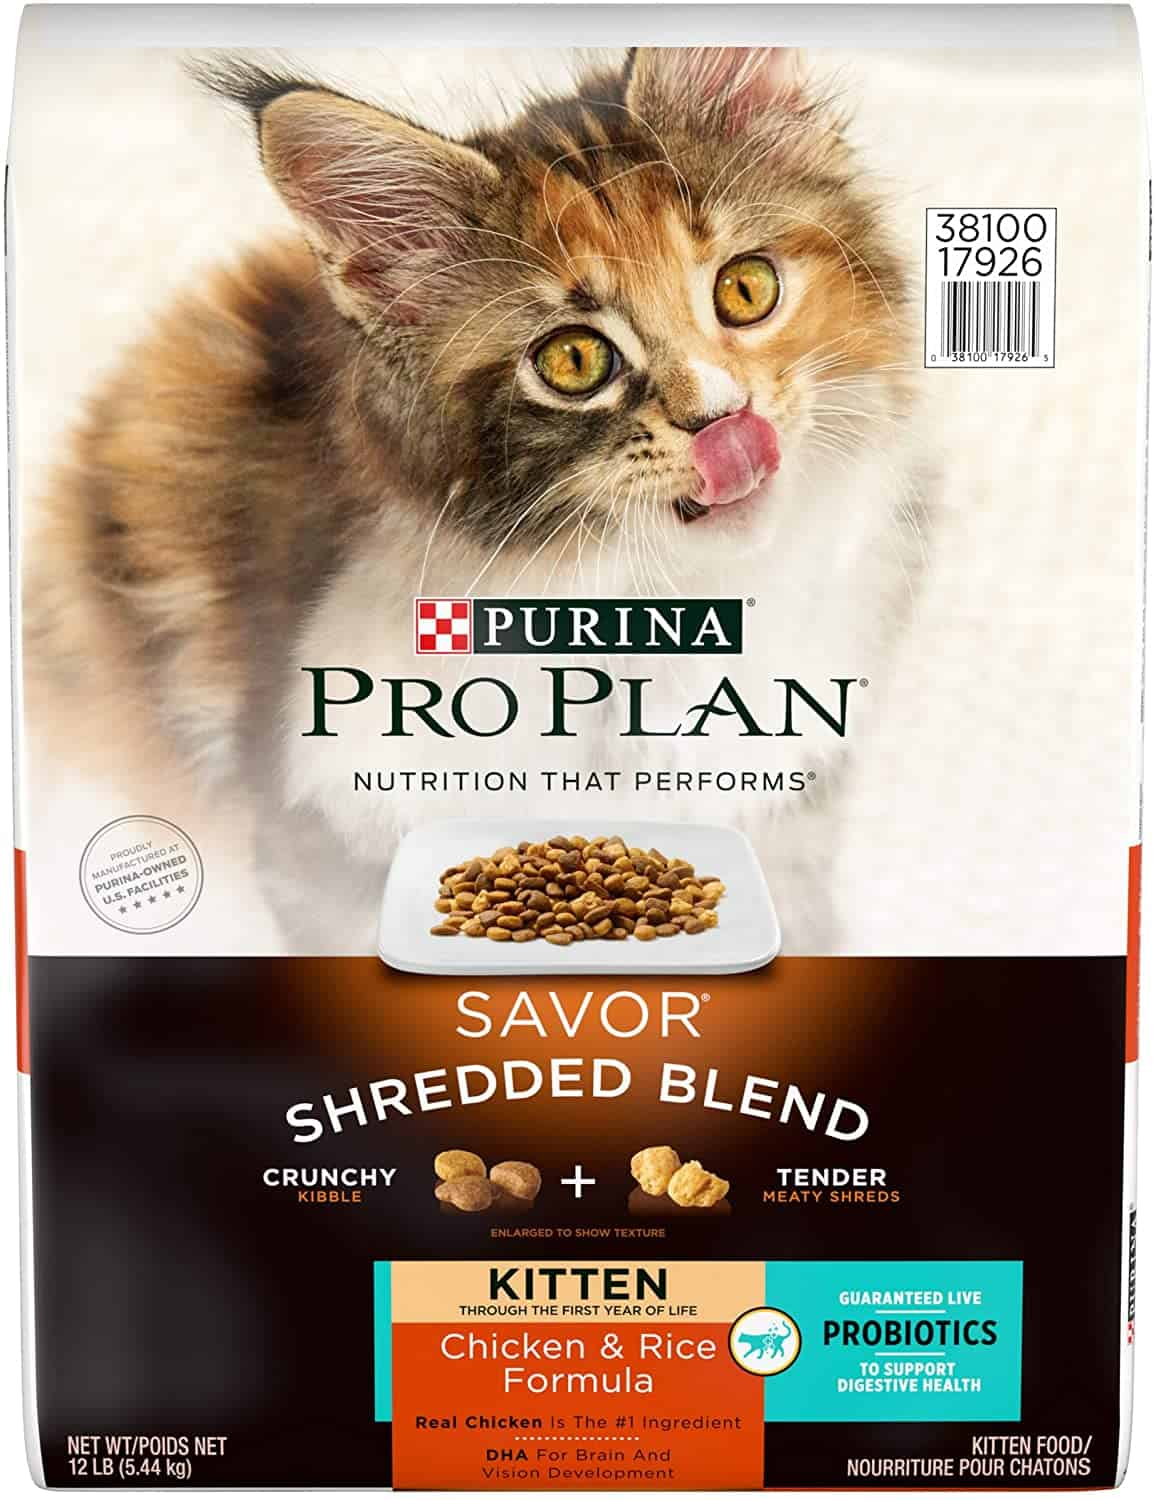 2020 Purina Pro Plan Cat Food Review: Advanced Nutrition for Cats 6